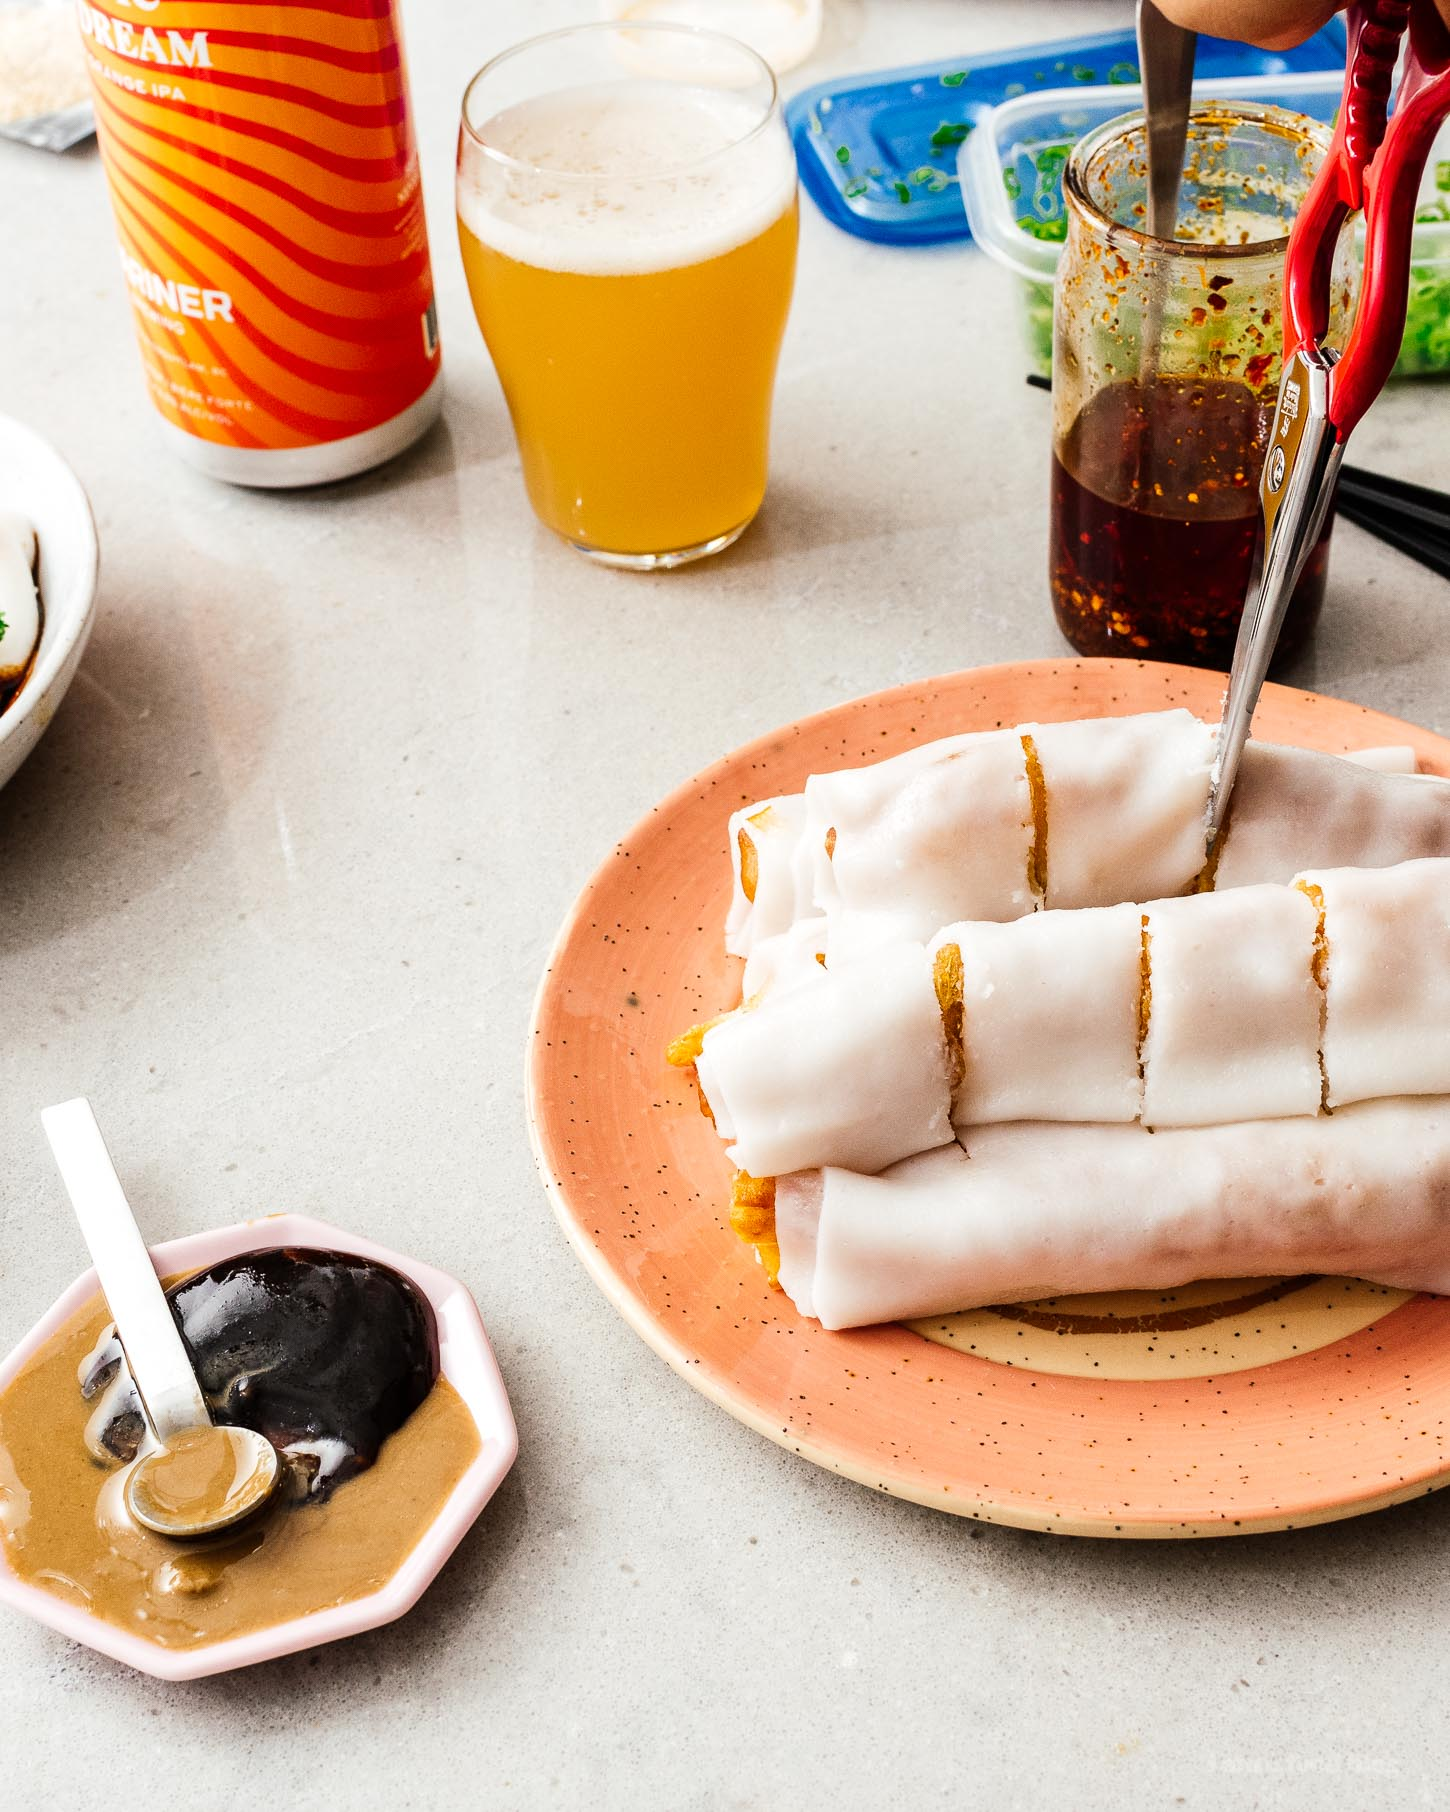 Zhaliang is super popular dish at Cantonese style dim sum made cheung fun (rice noodle sheets) wrapped around crispy youtiao (Chinese fried dough). It's insanely tasty and easier than you think to make at home! #chinesefood #recipe #dimsum #zhaliang